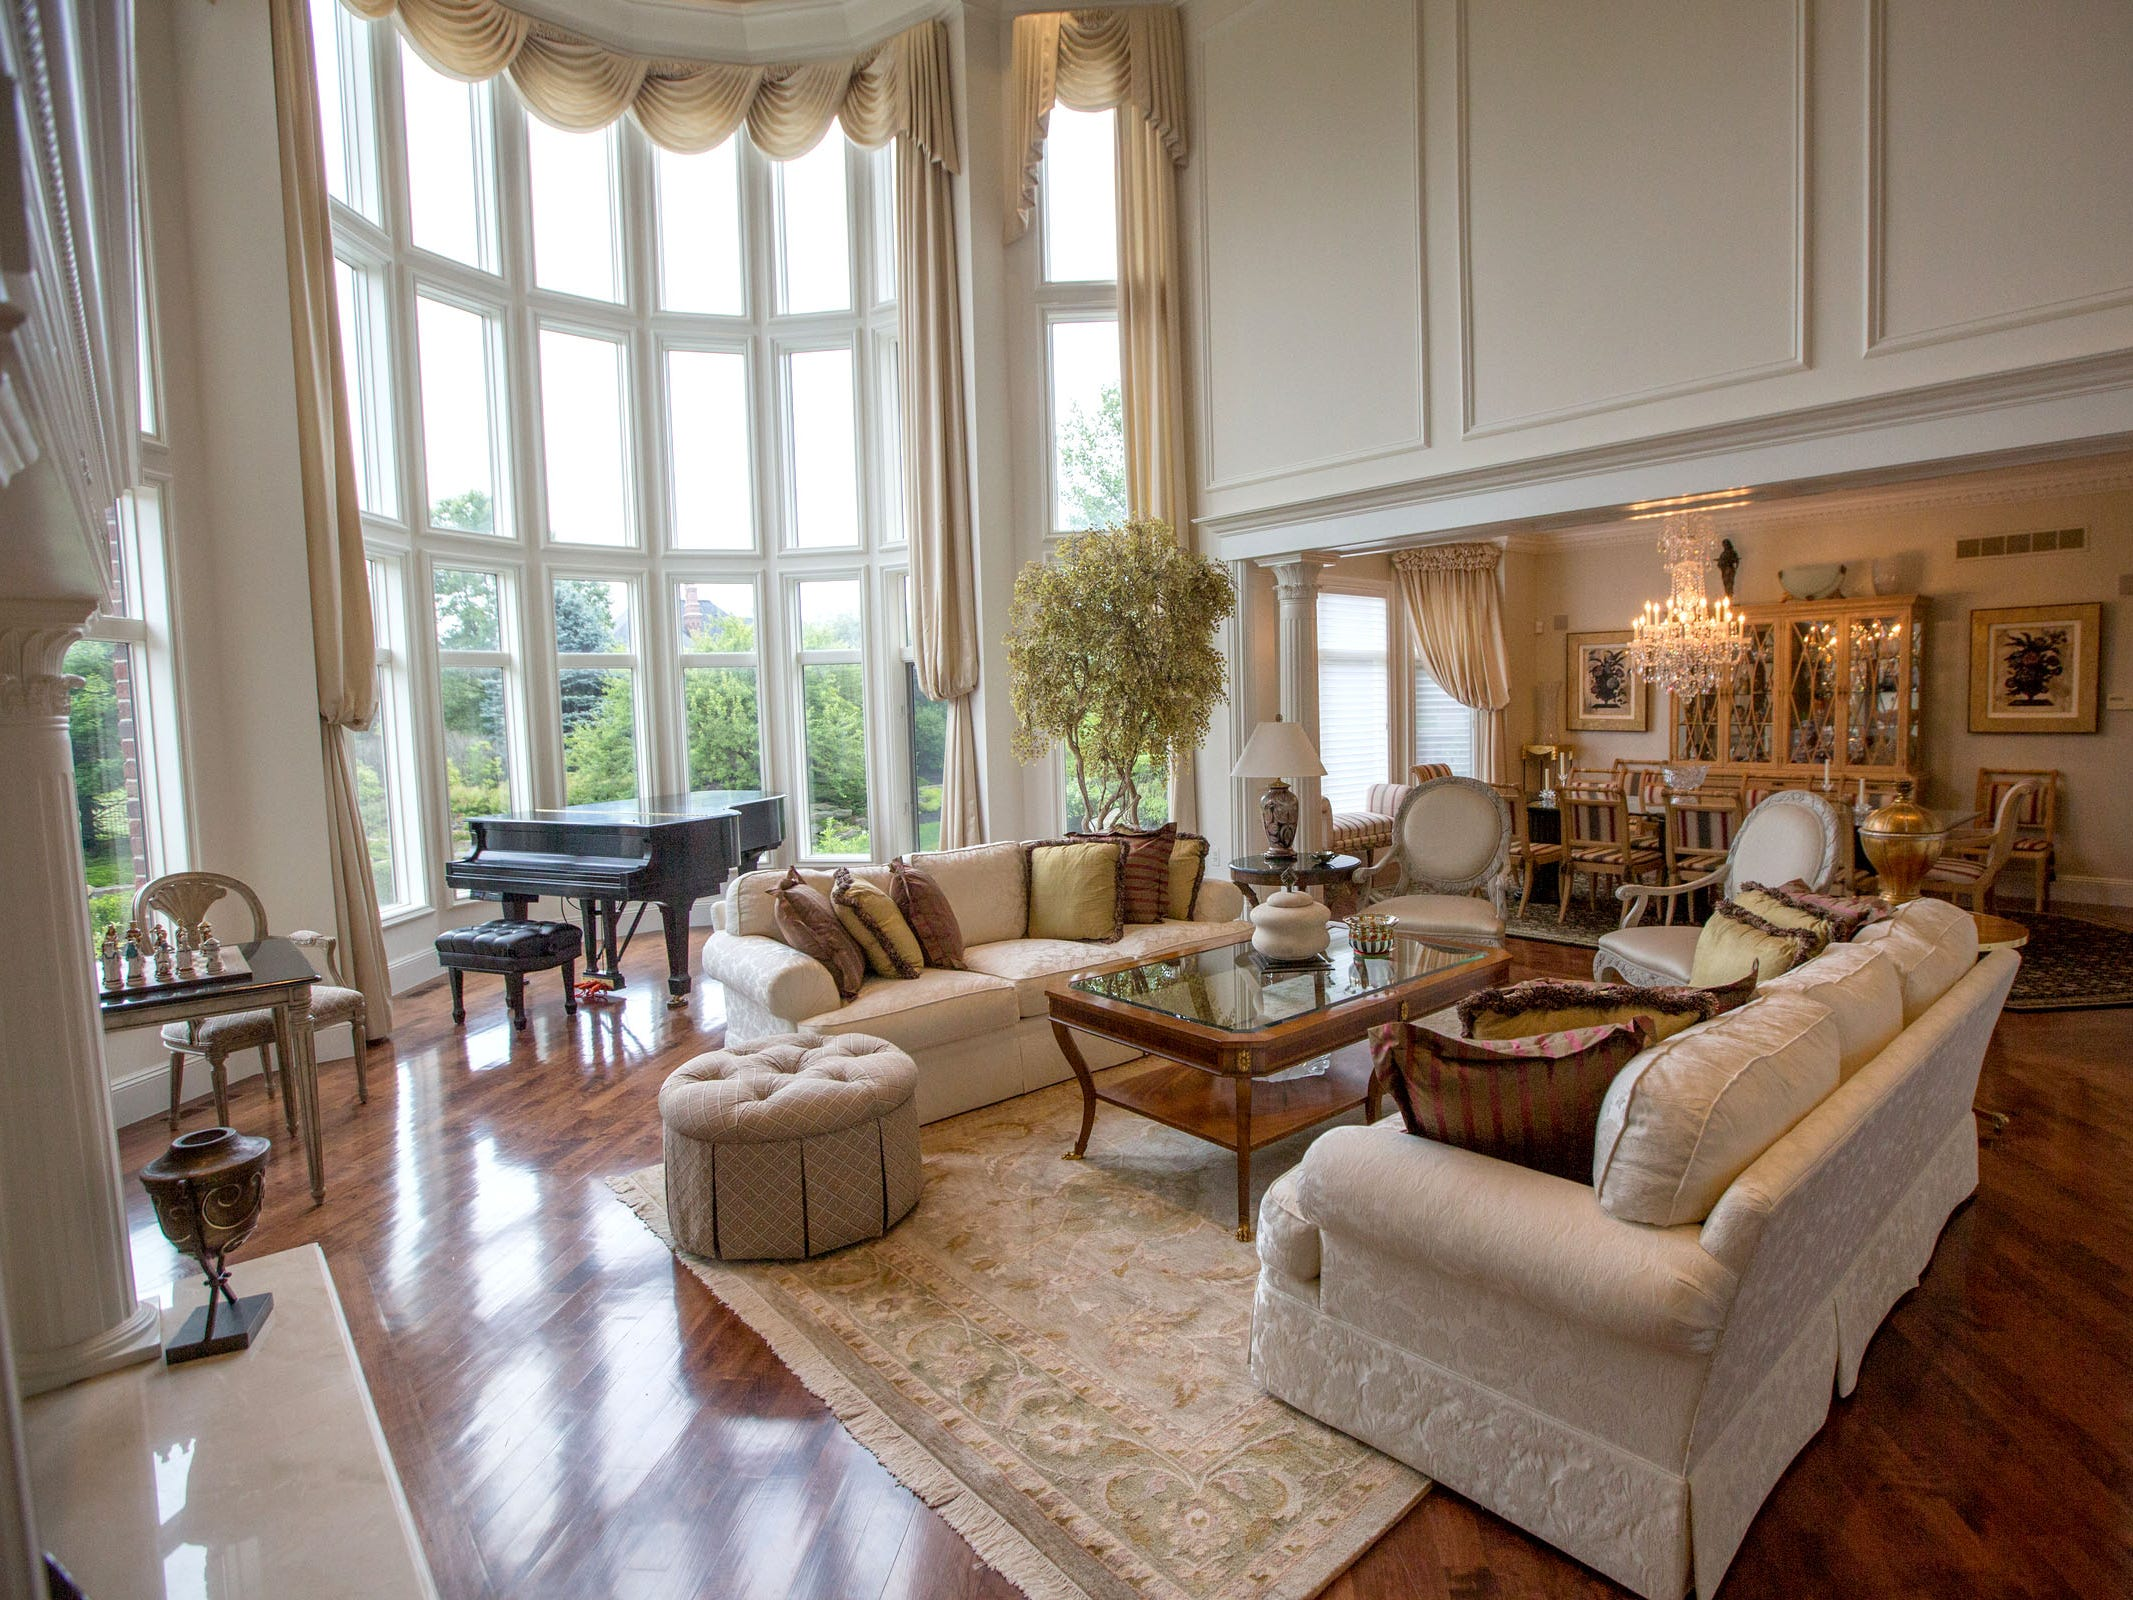 Windows are 30 feet high in the living room, with draperies that reach the floor. Pillars at the dining room entrance are a theme.